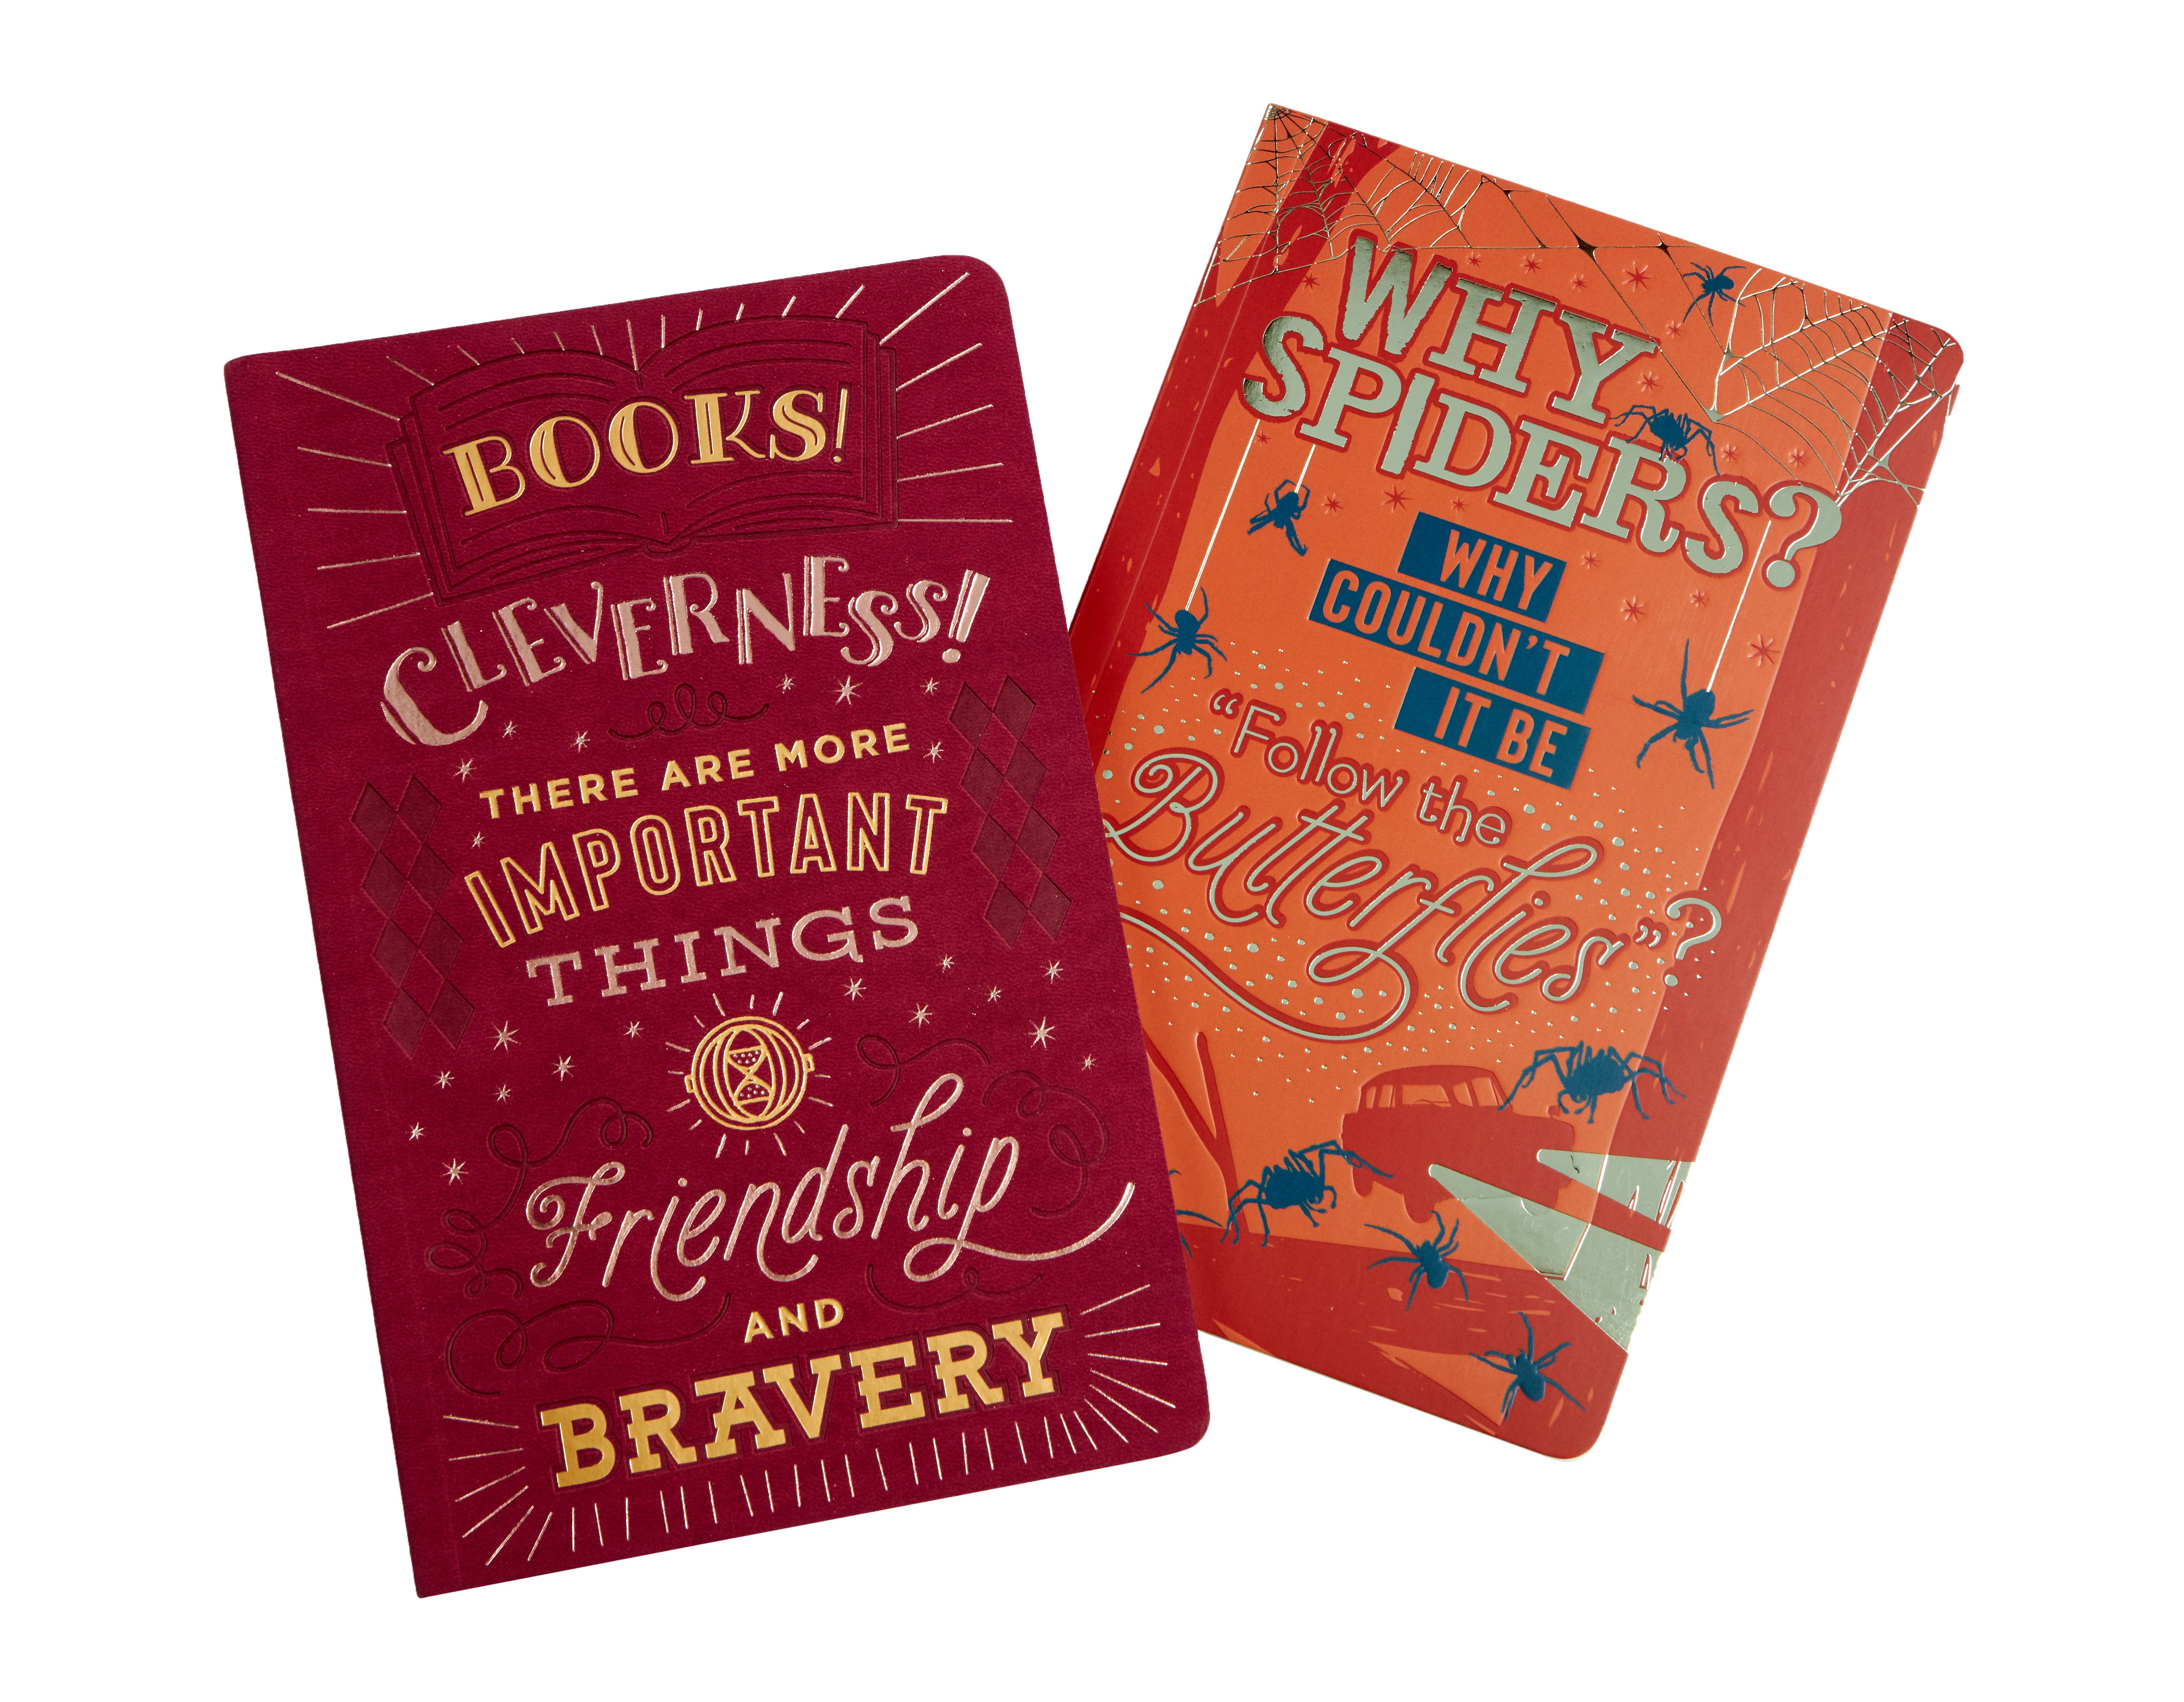 These notebooks have the sweetest quotes on them!